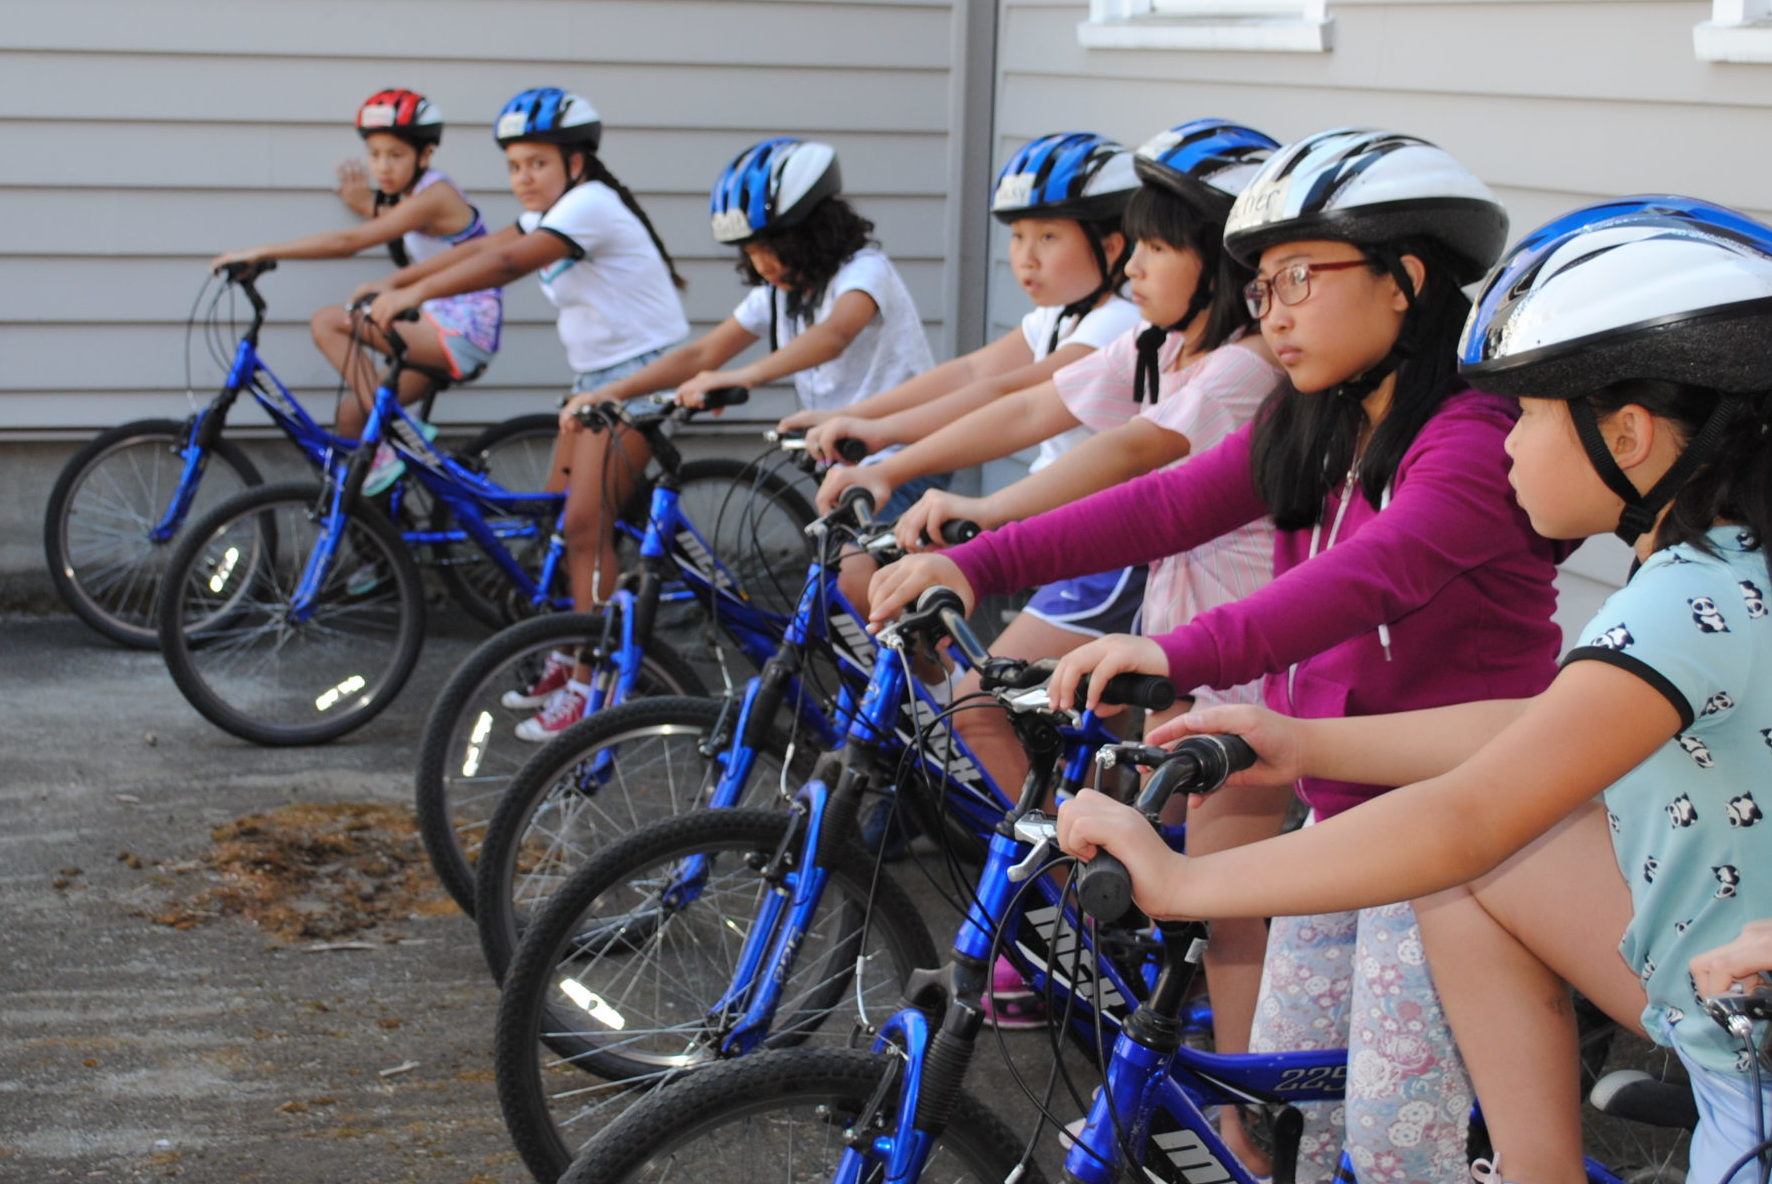 A group of children wearing helmets sit on bikes in a row.